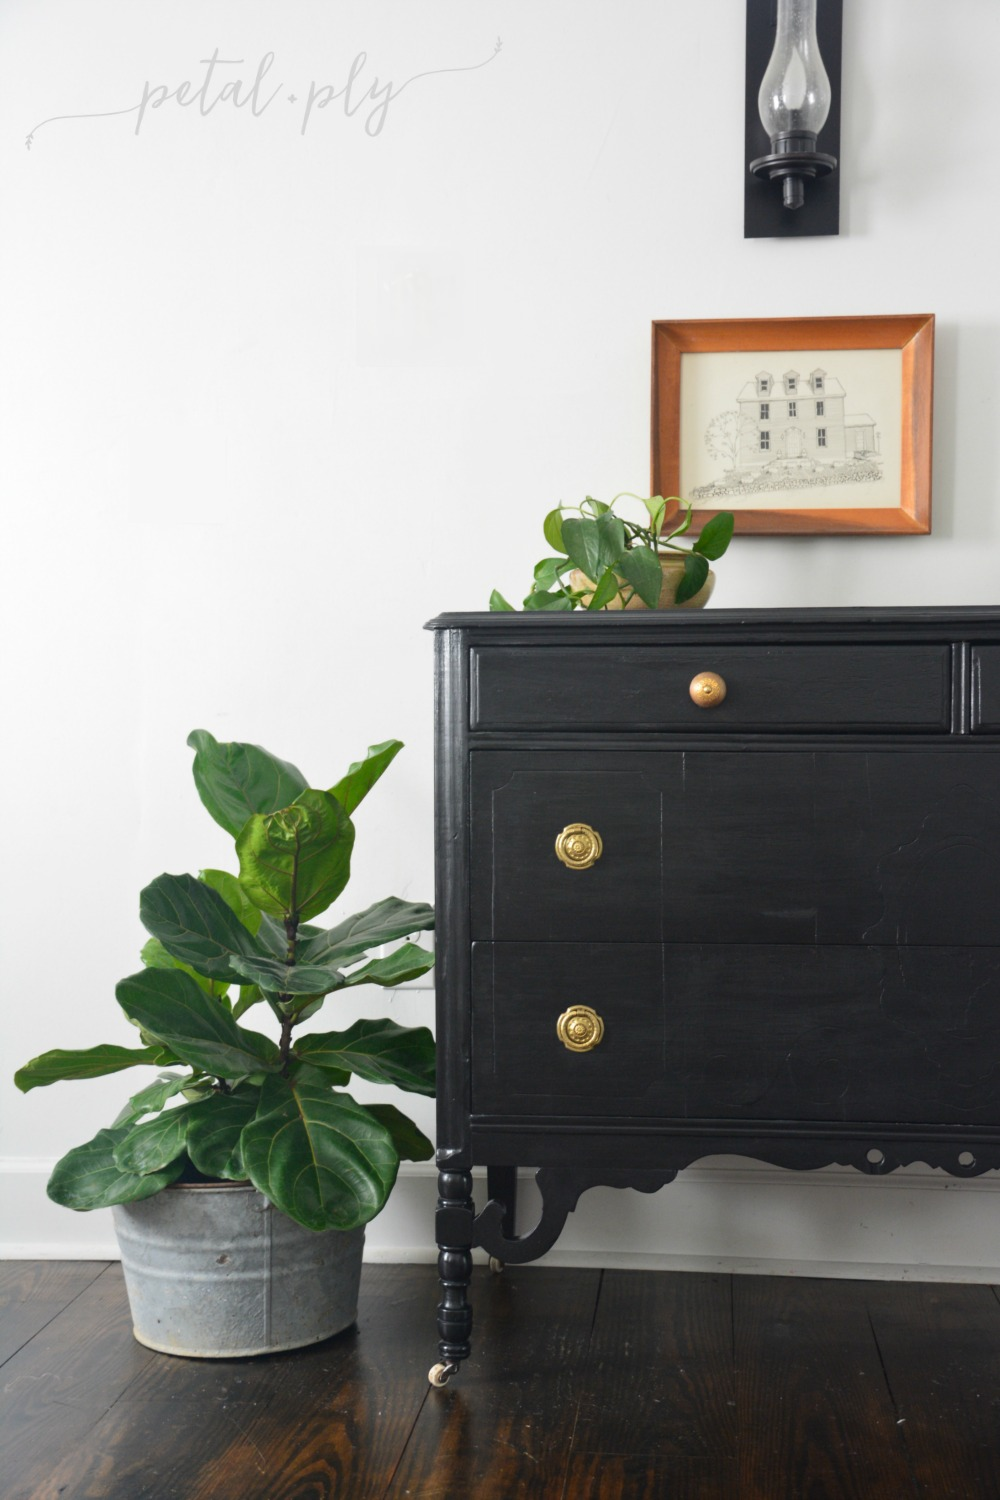 wm-Petal-and-Ply-Liquorice-dresser